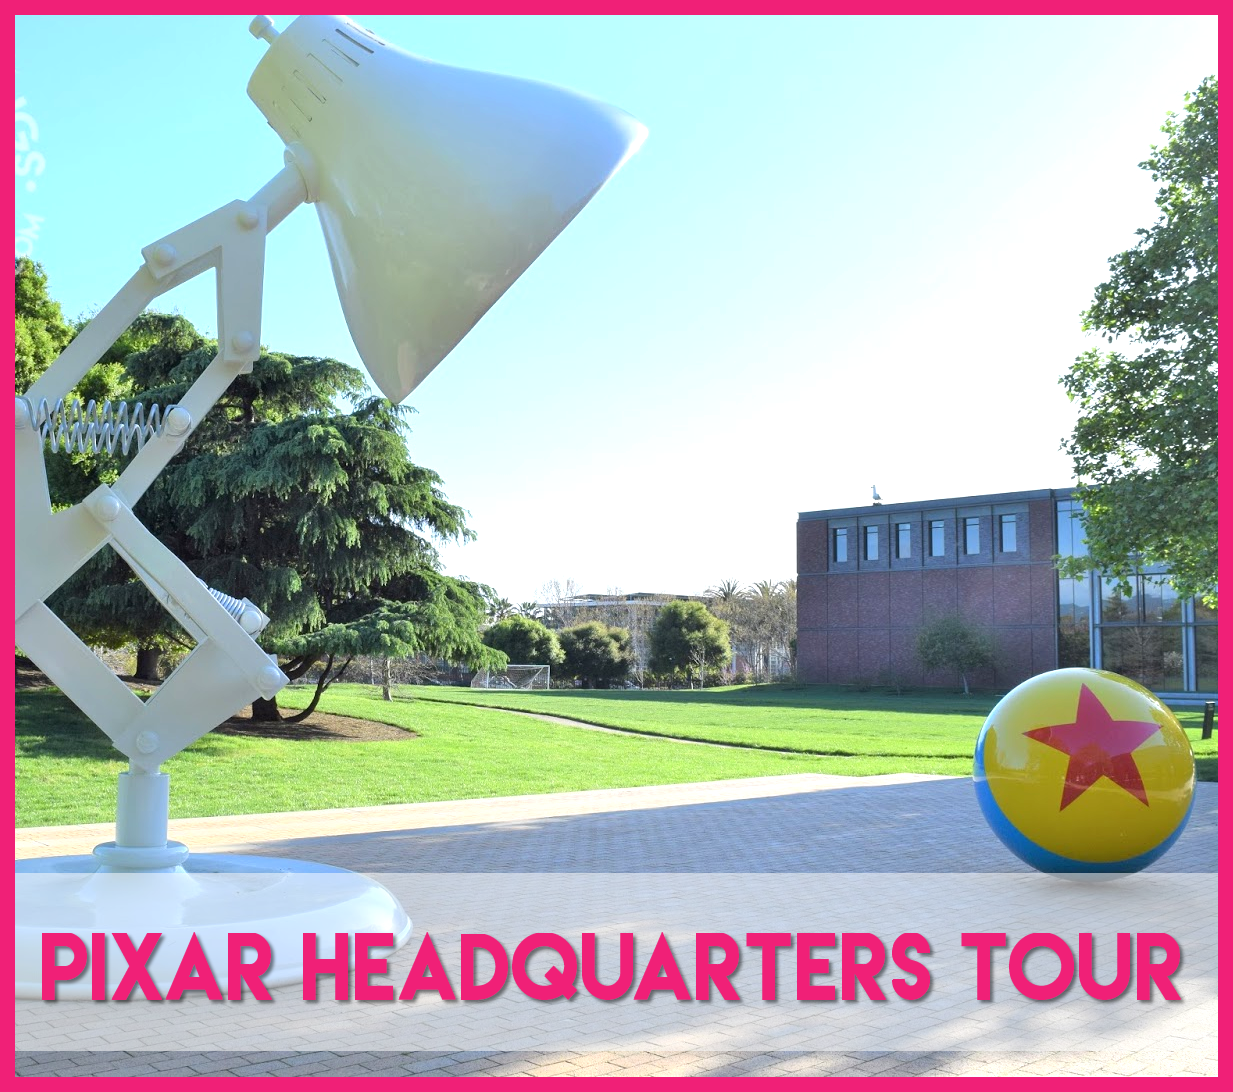 Pixar Headquarers Tour